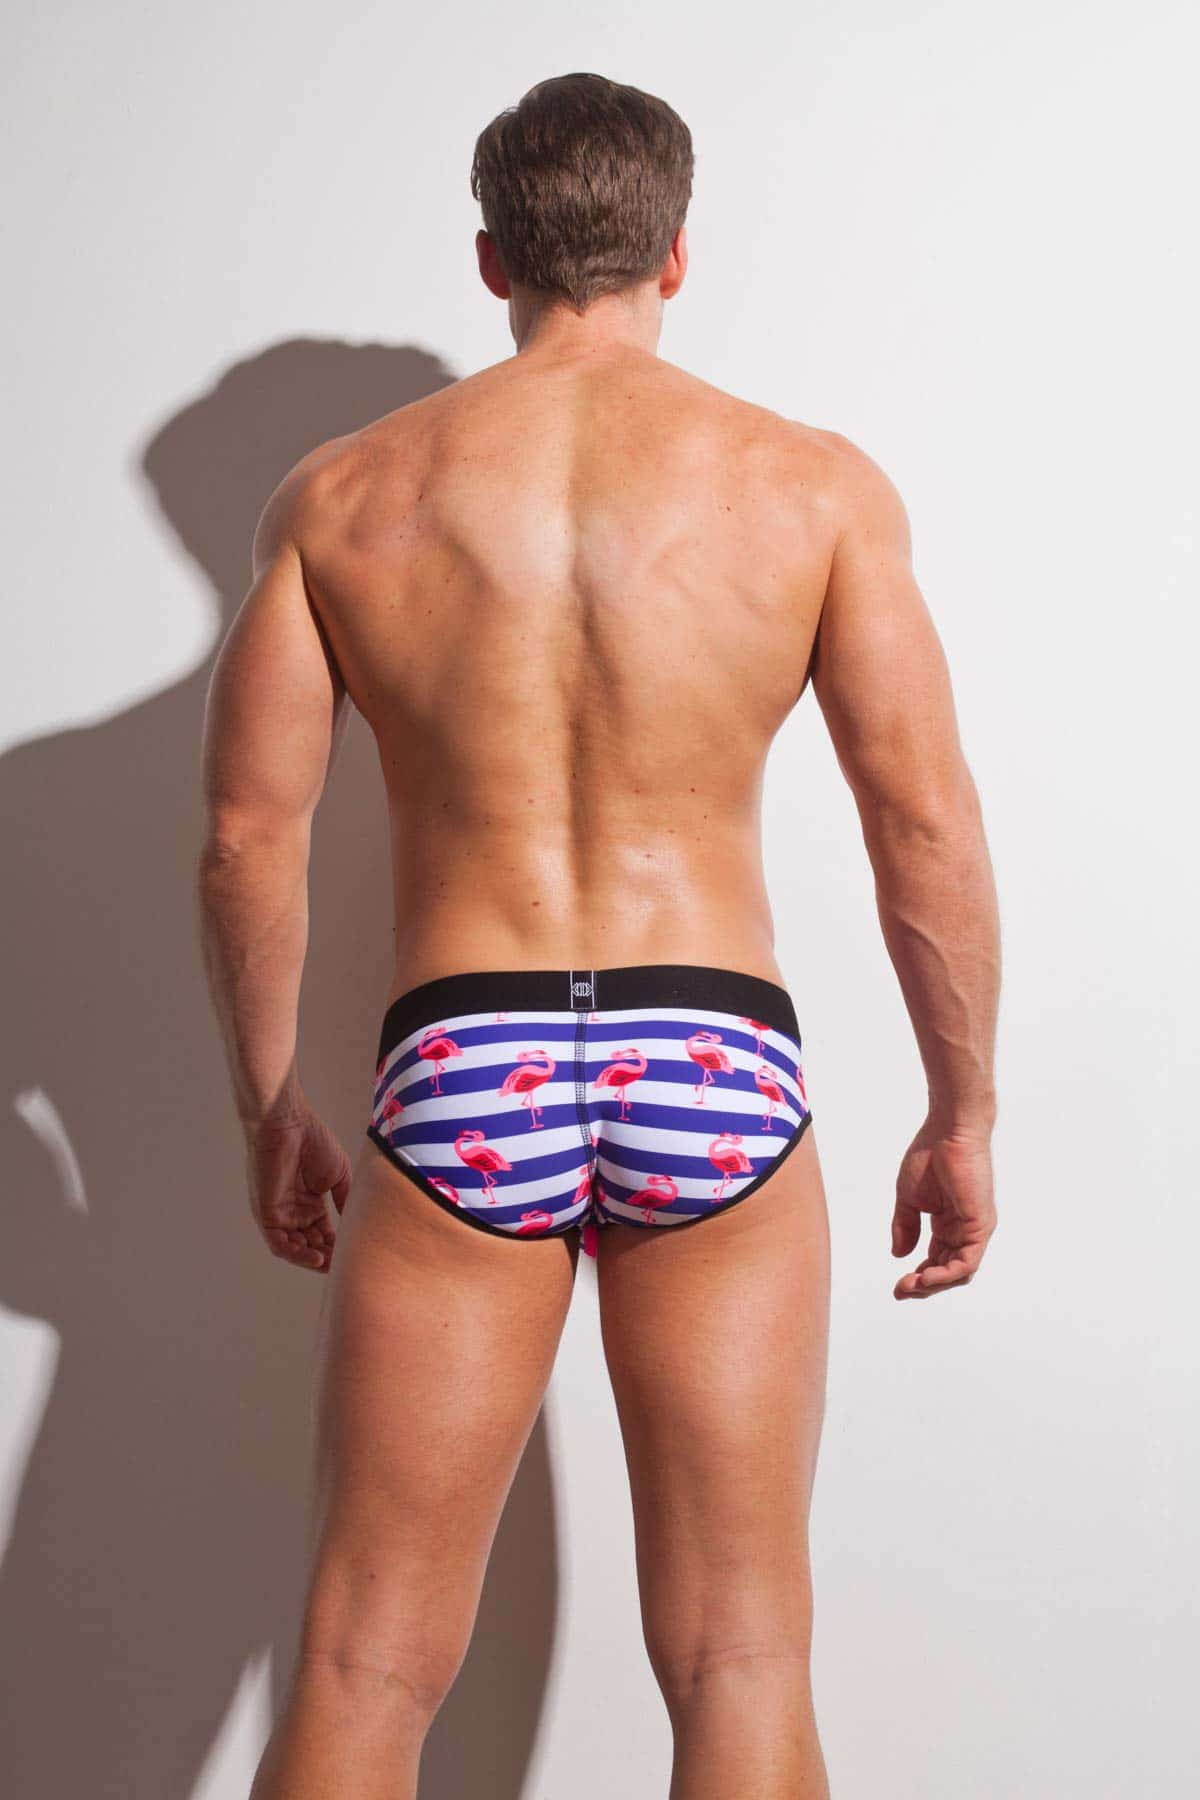 Male underwear model wearing Marco Marco Nautical Brief available at www.MensUnderwear.io